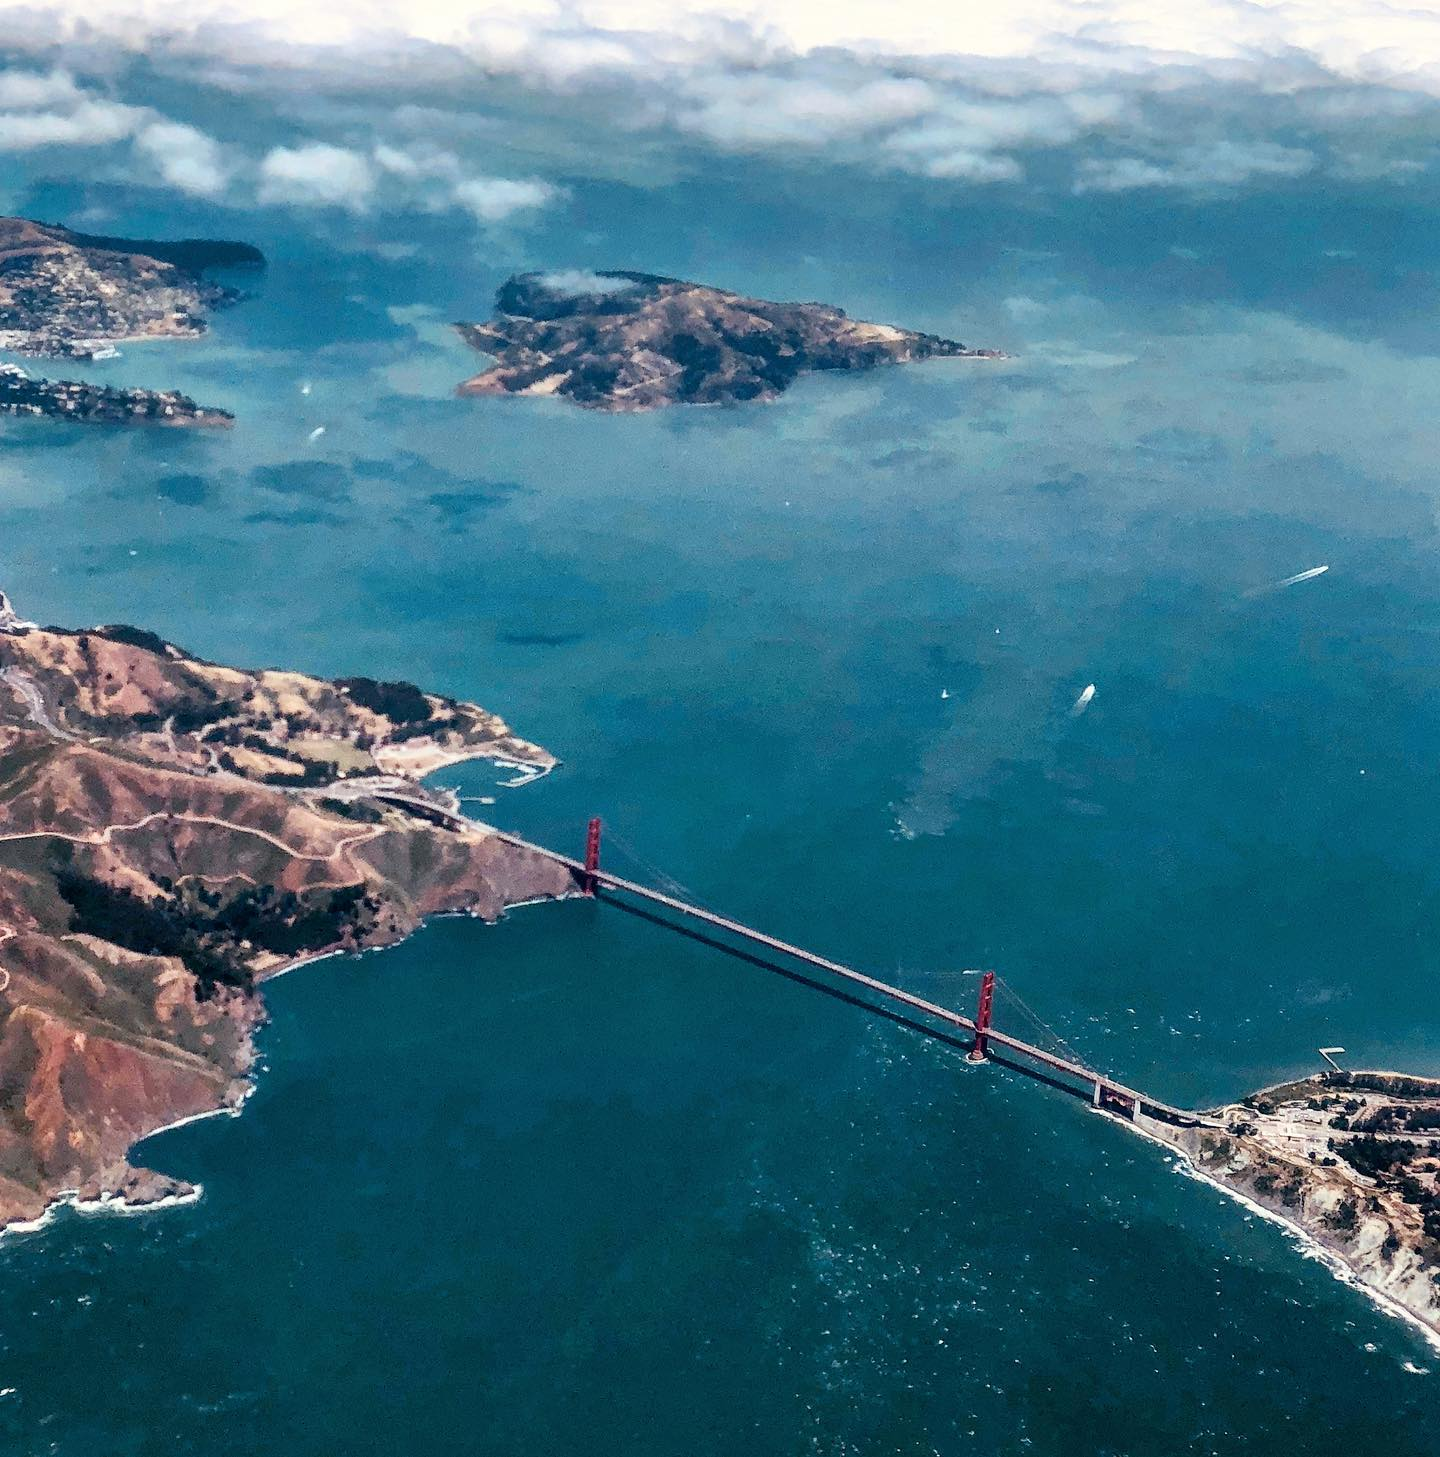 Golden Gate Bridge, San Francisco, California Approach to SFO. Golden Gate Bridge from bird's-eye-view. #usa #usatravel #usatraveler #sanfrancisco #sanfranciscogram #california #approach #intheair #sfo #goldengatebridge #flightphotography #travelgram #travelblog #travelblogger #reisegram #reiseblog #reiseblogger #travelholic #reisefotografie #travelphotography #birdseyeview #vogelperspektive #californialove #travellove